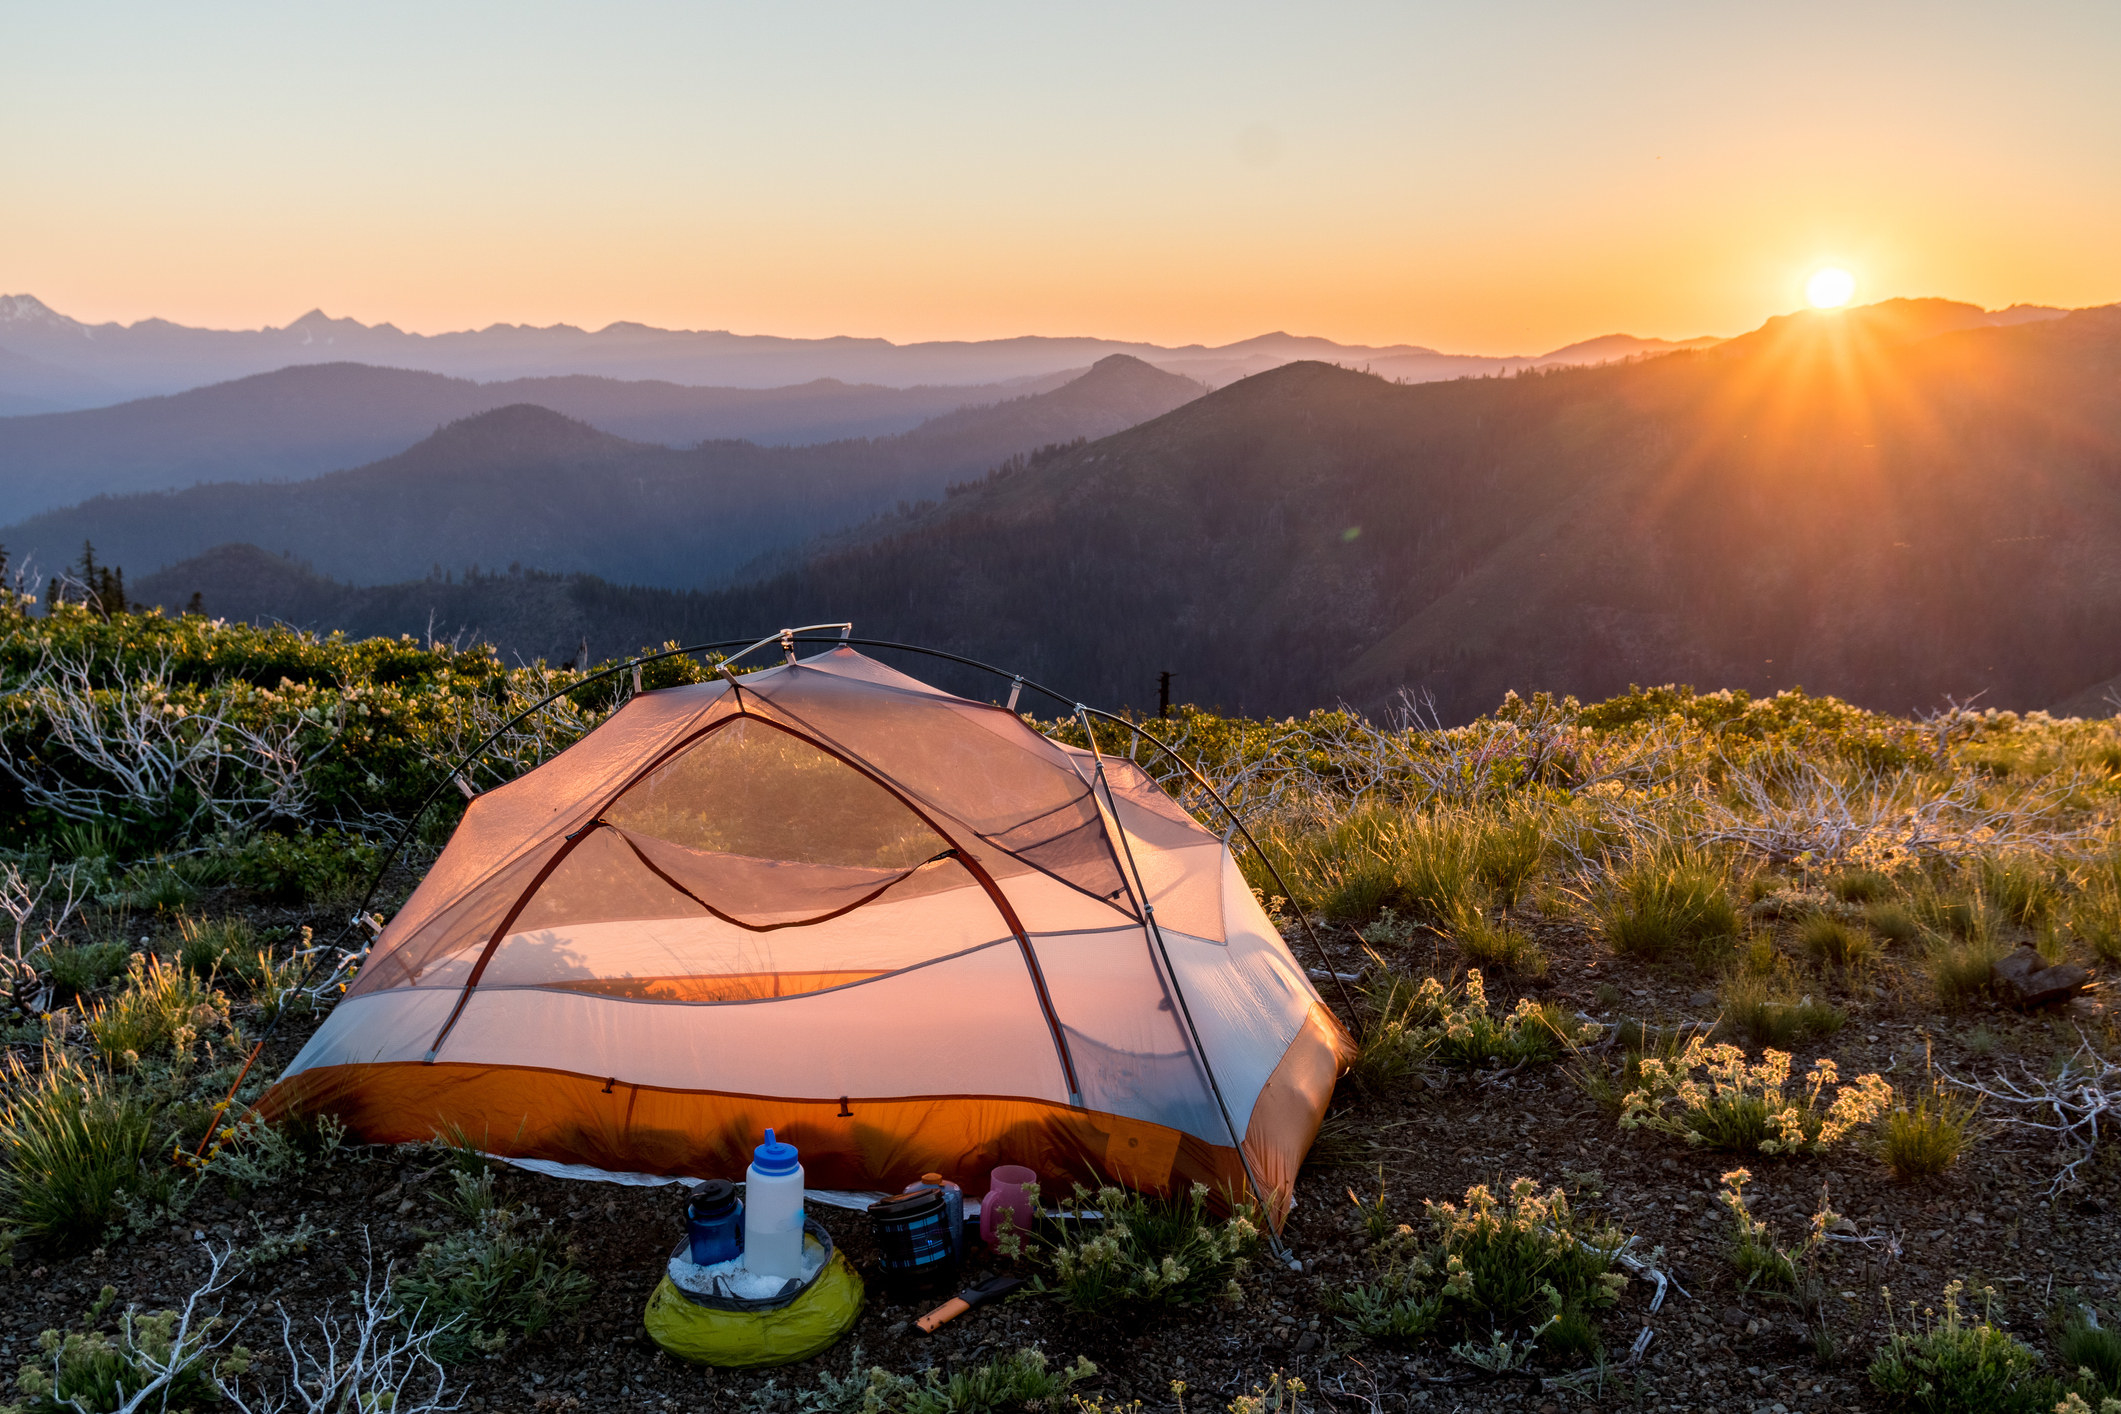 a remote tent on a flat mountain top with the sunset in the background